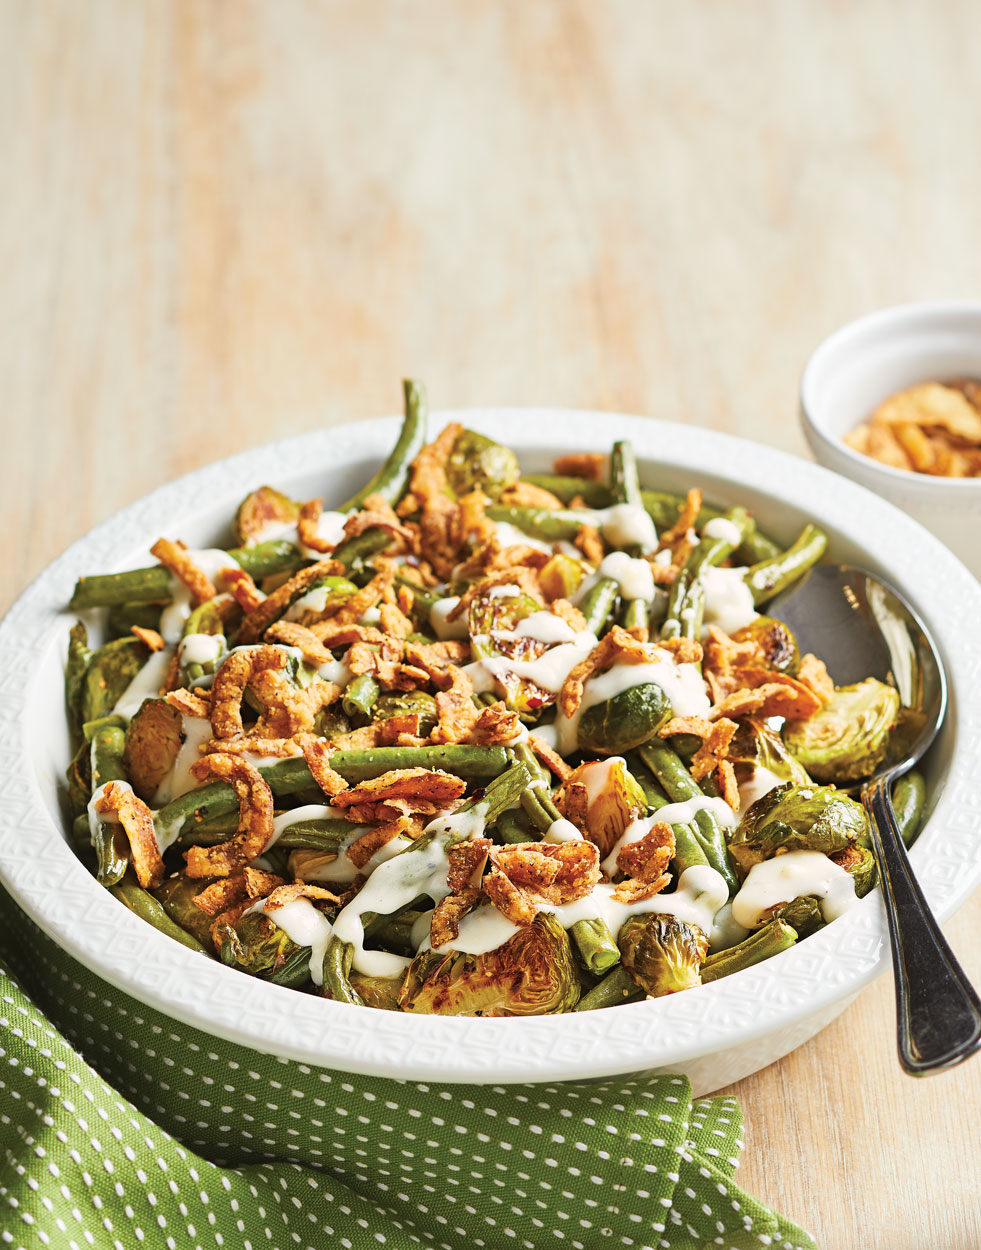 Roasted Brussels Sprouts & Green Bean Casserole